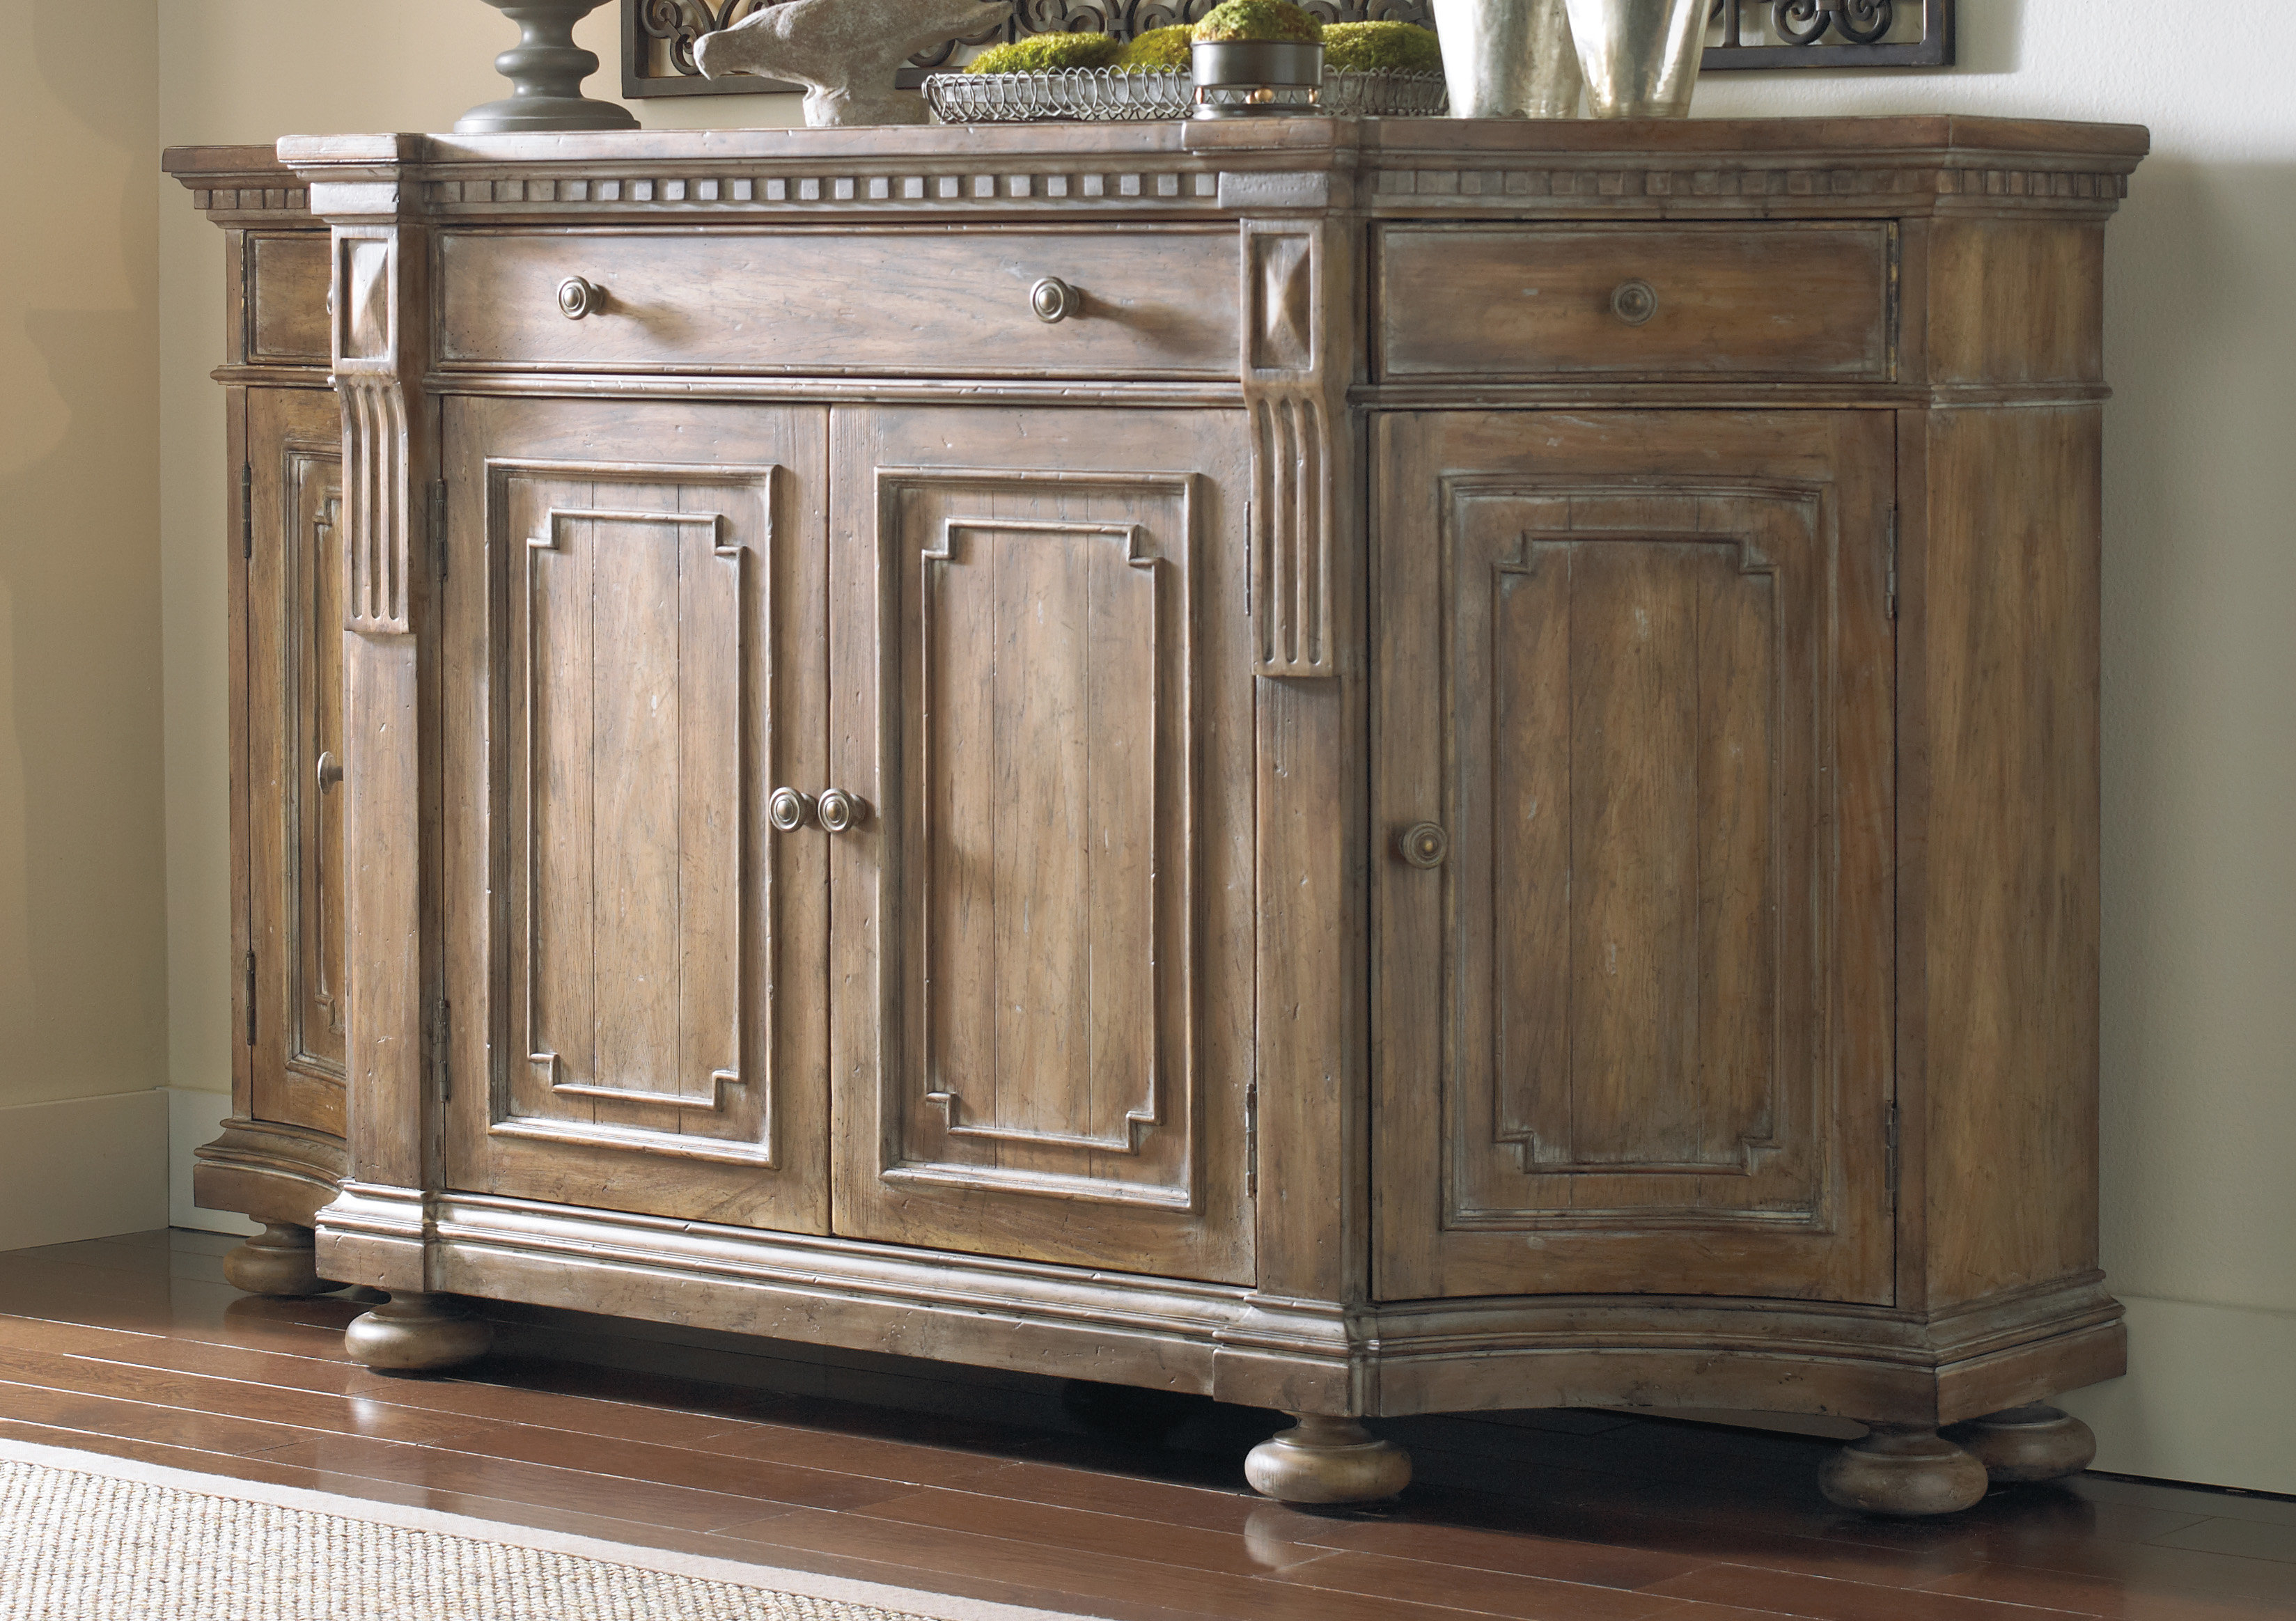 Farmhouse & Rustic Hooker Furniture Sideboards & Buffets Regarding Seven Seas Asian Sideboards (View 12 of 23)